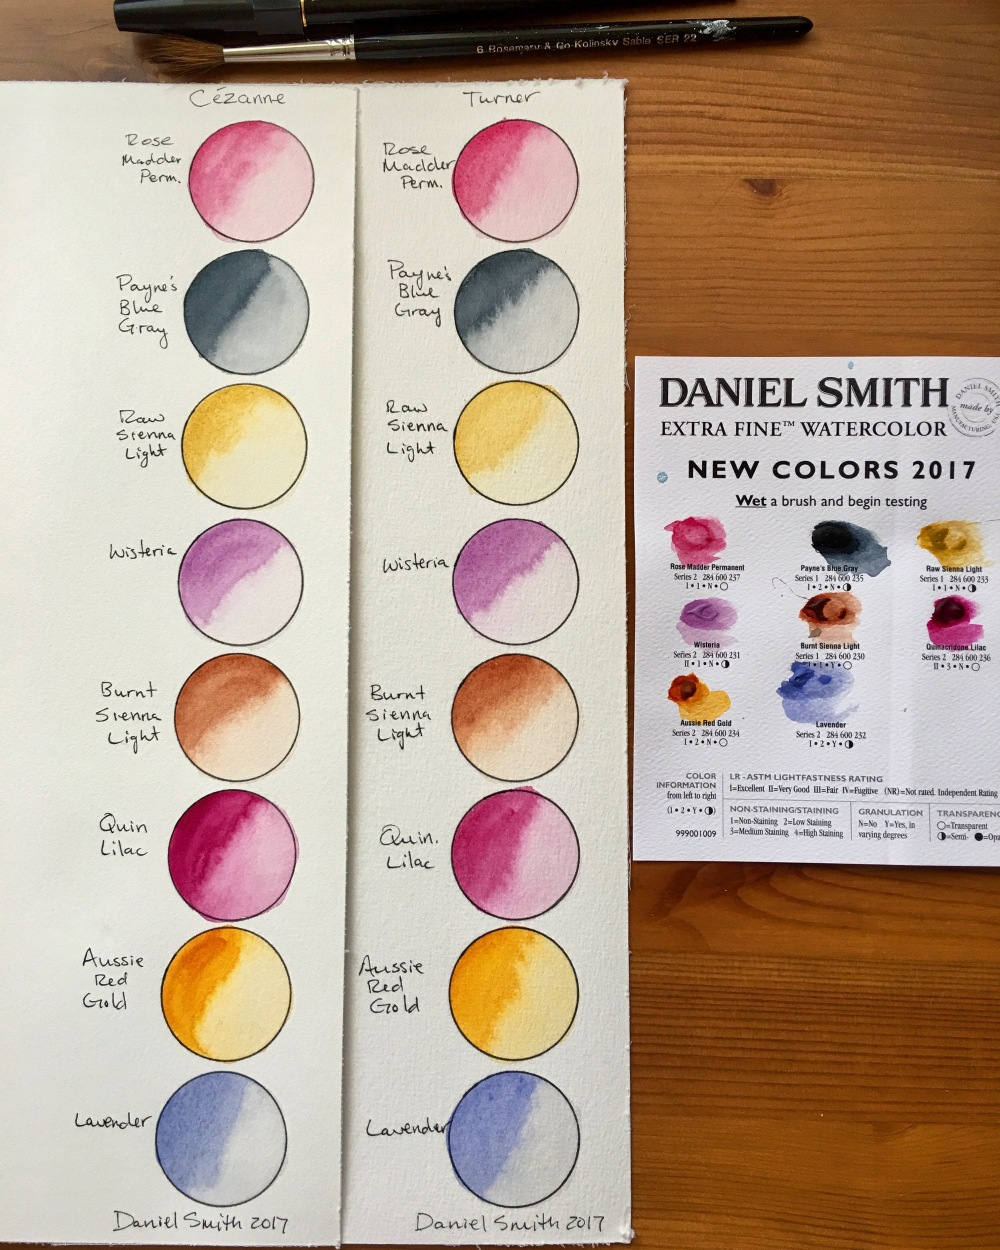 Daniel Smith 2017 watercolors on Hahnemuhle cezanne and turner watercolor paper